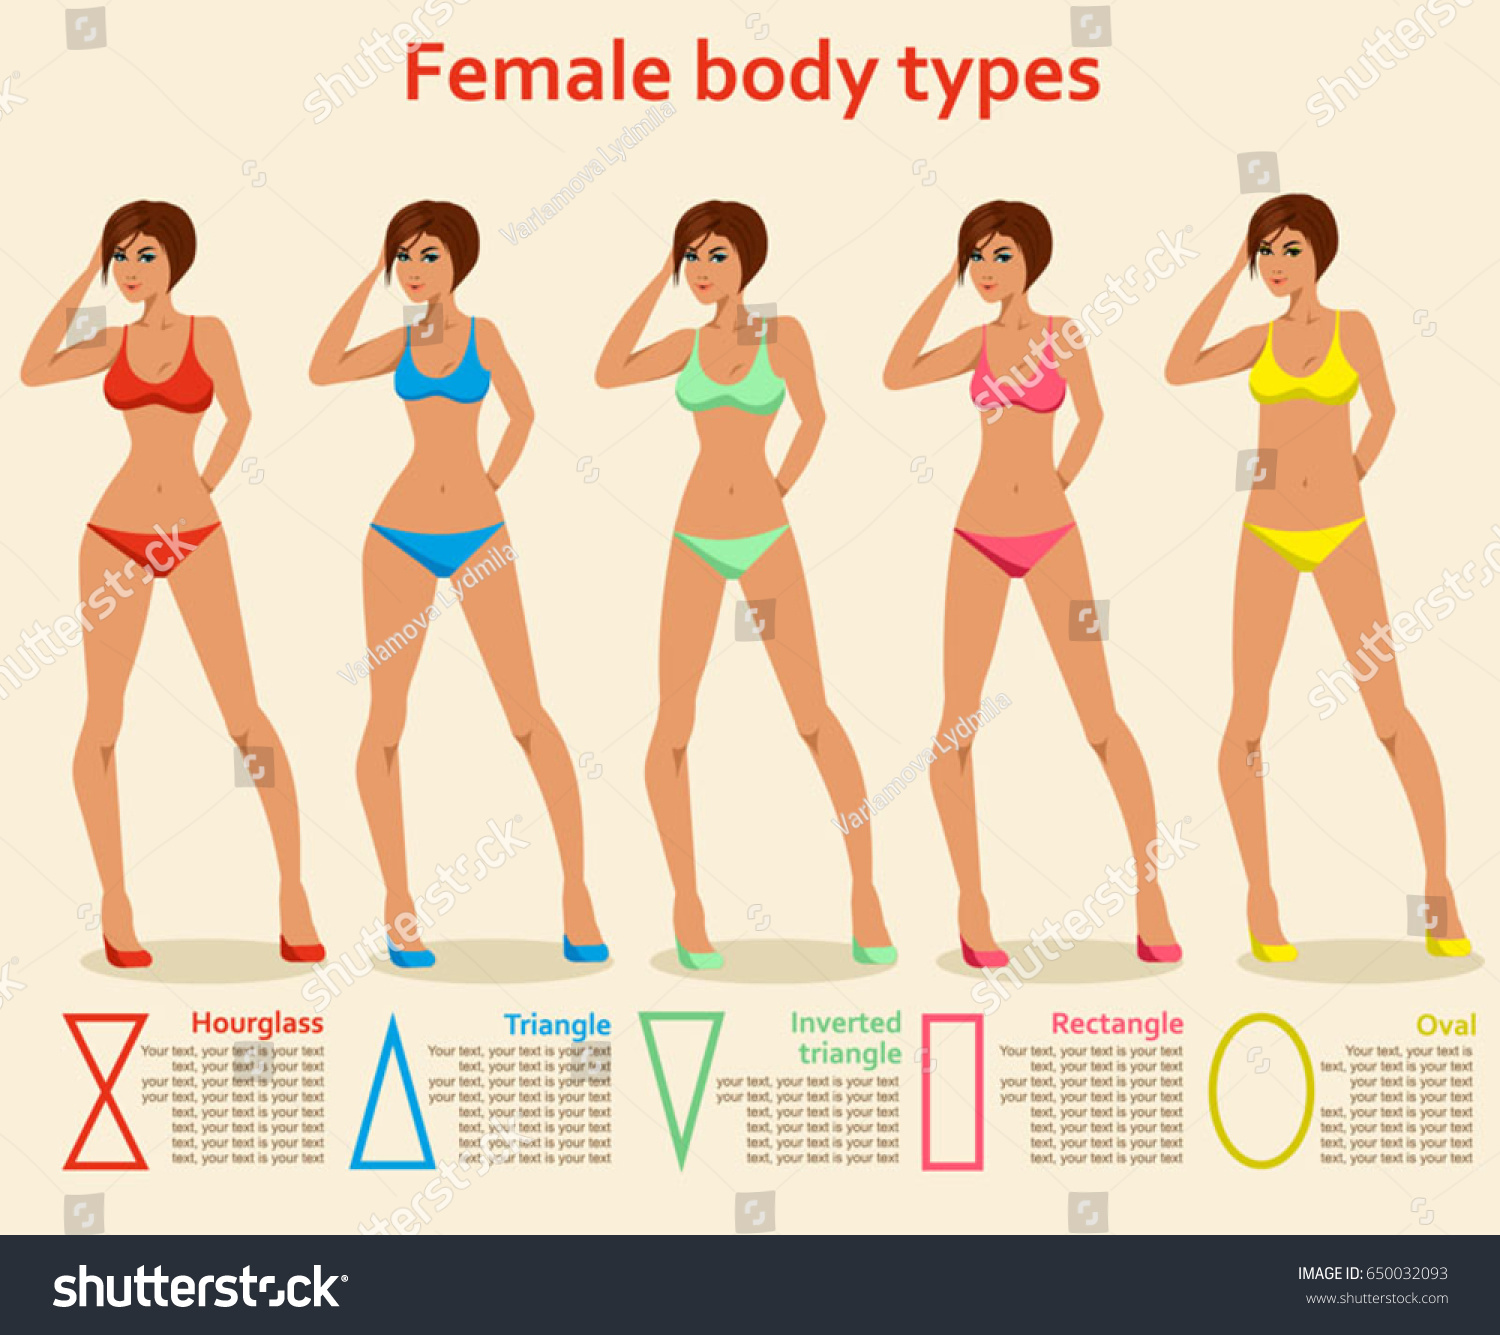 2306d8bfda5 Vector illustration of women s figures. Different body types. Fashion  Figures